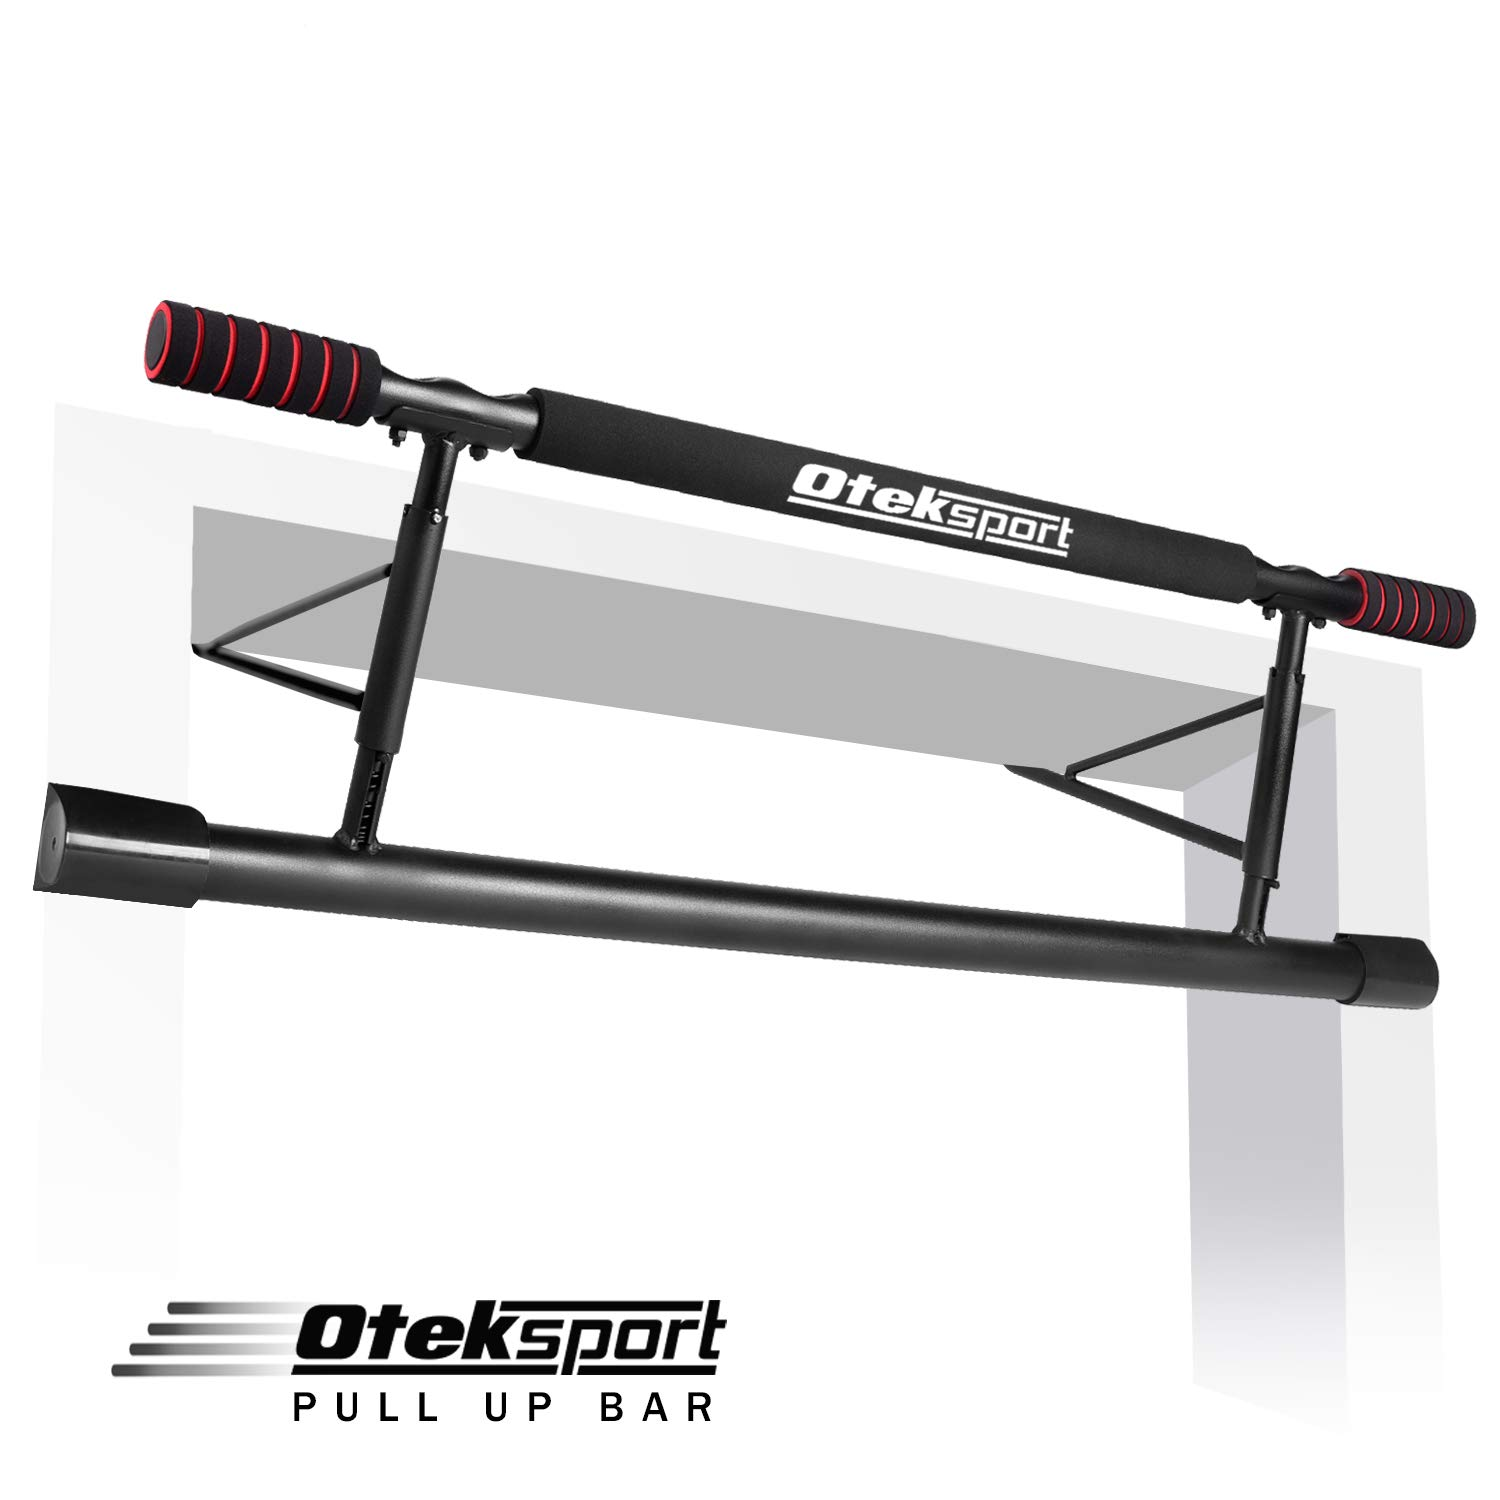 Oteksport Pull Up Bar - Workout Bar for Doorway Home Gym Exercise Fitness Equipment